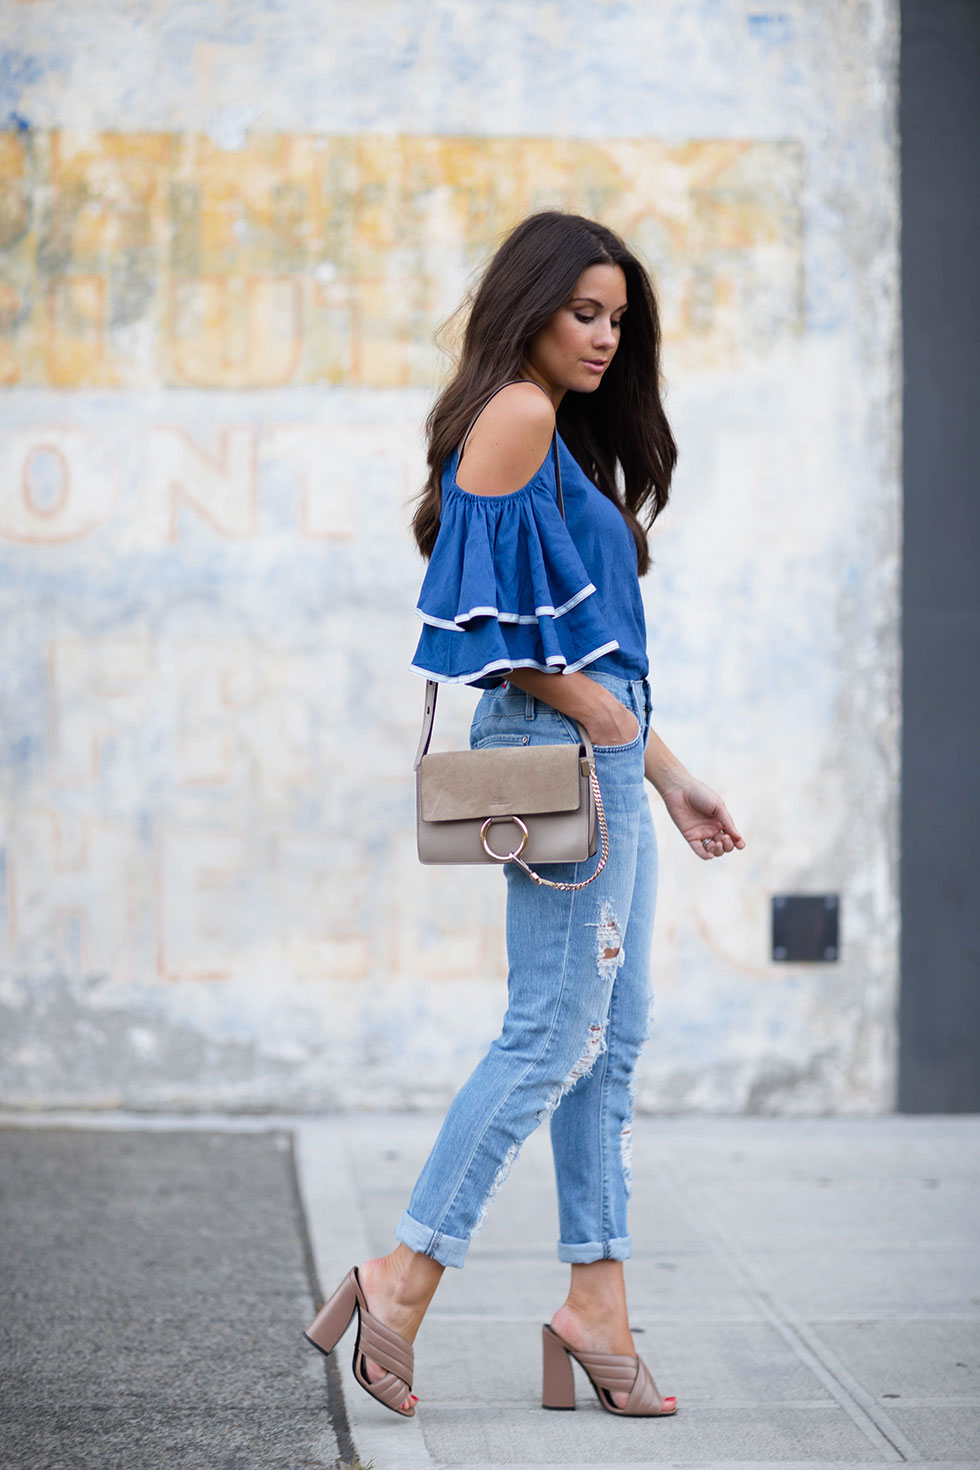 40fc6386679 ... Ruffled Sleeves Coldshoulder Top and chloe faye bag outfit ...